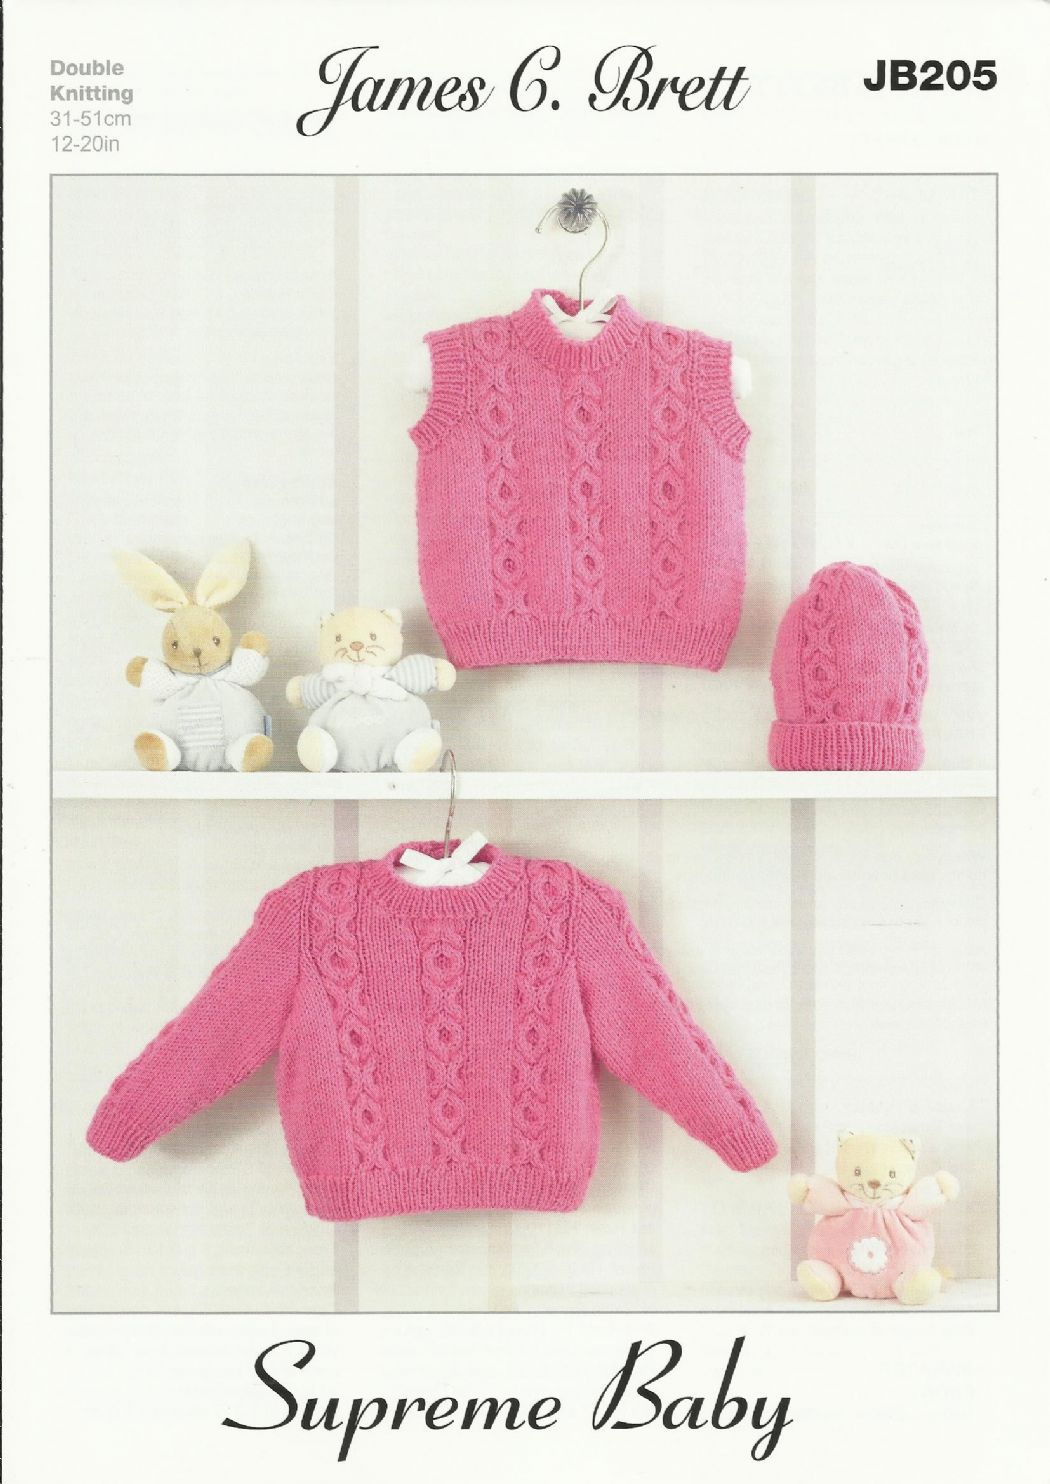 d2458a442 James C Brett Babies Sweater Slipover   Hat Baby DK Knitting Pattern ...